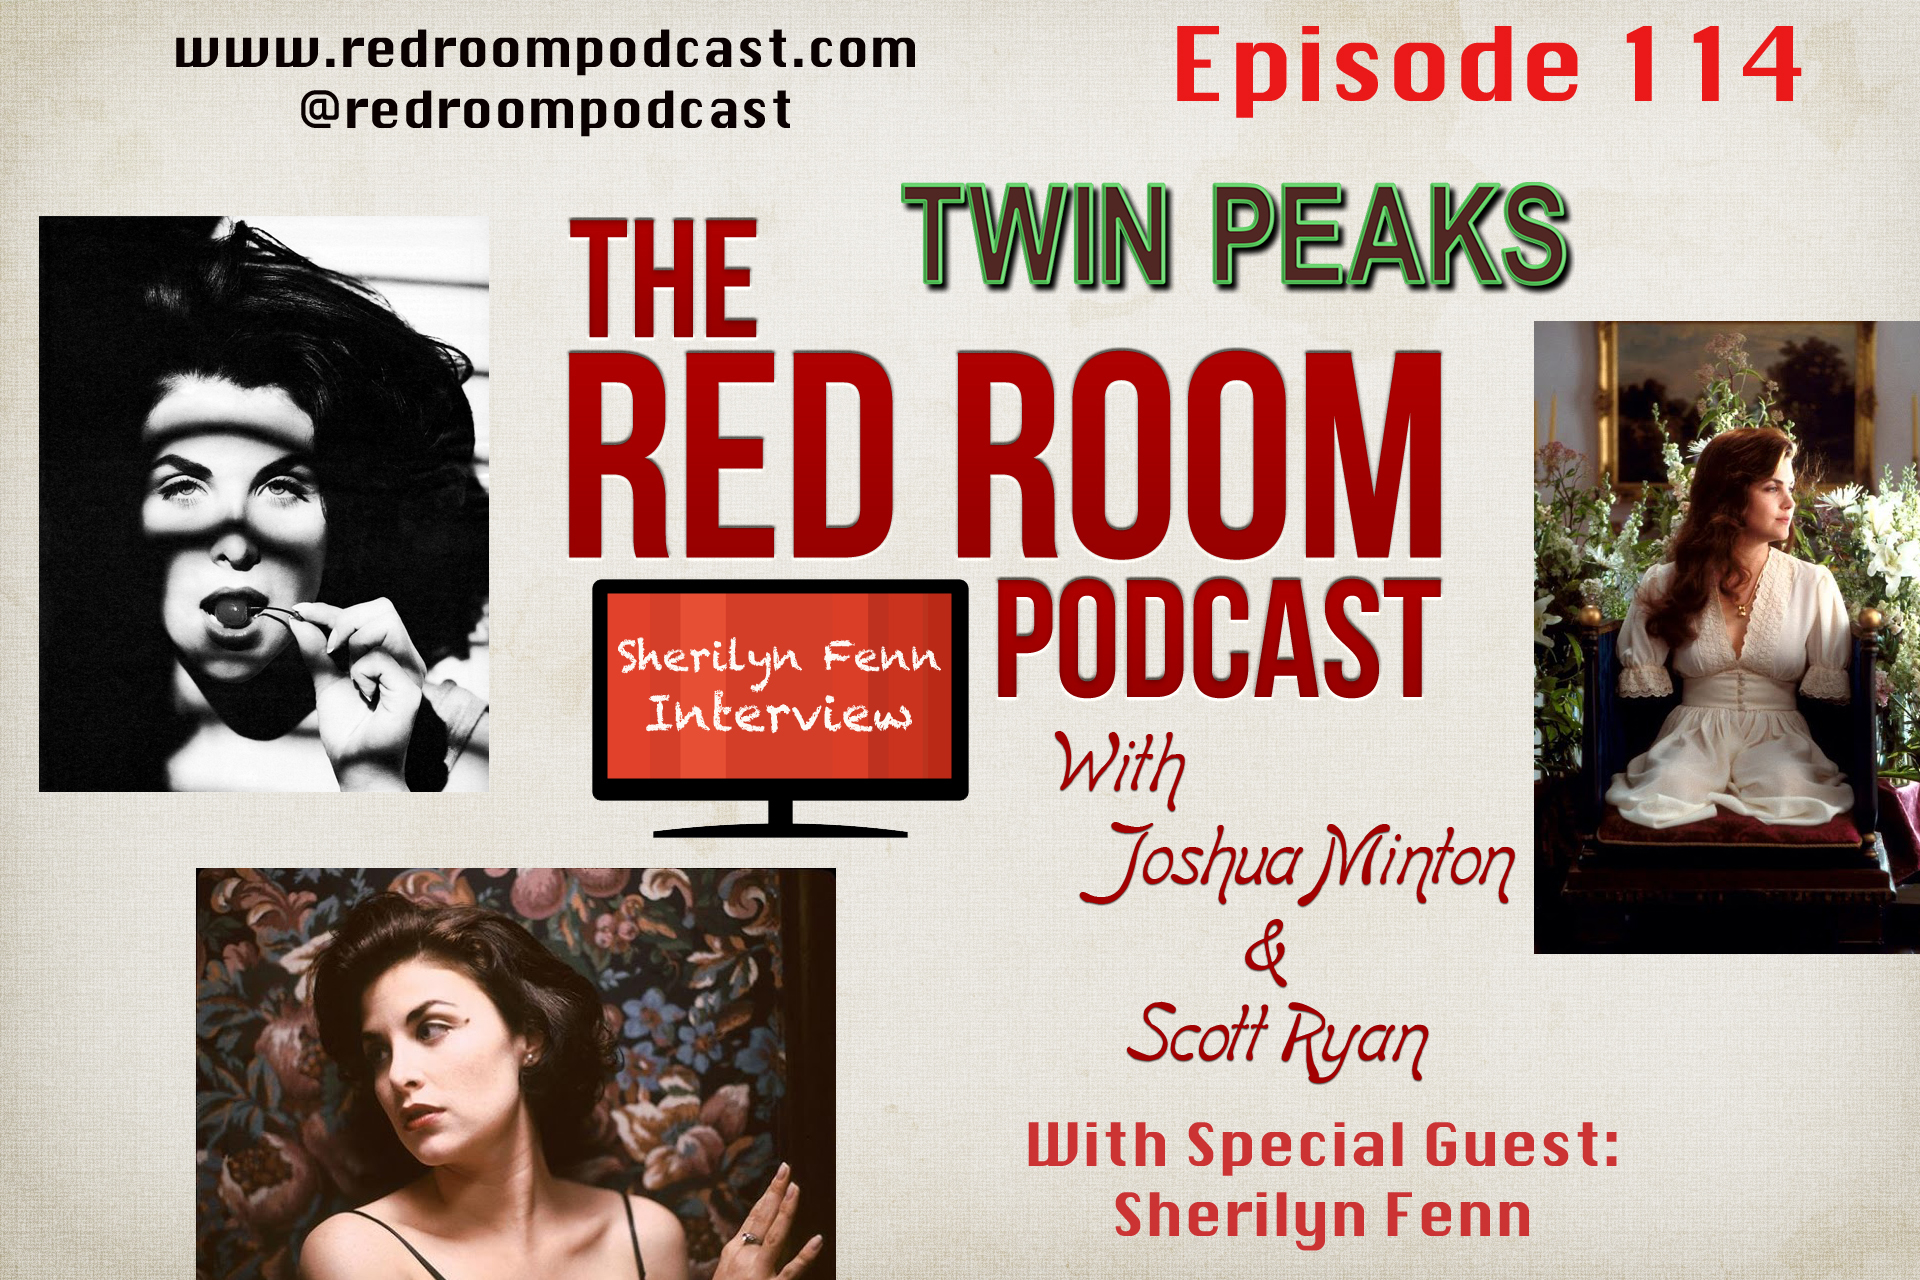 Sherilyn Fenn Podcast Interview The Red Room Podcast